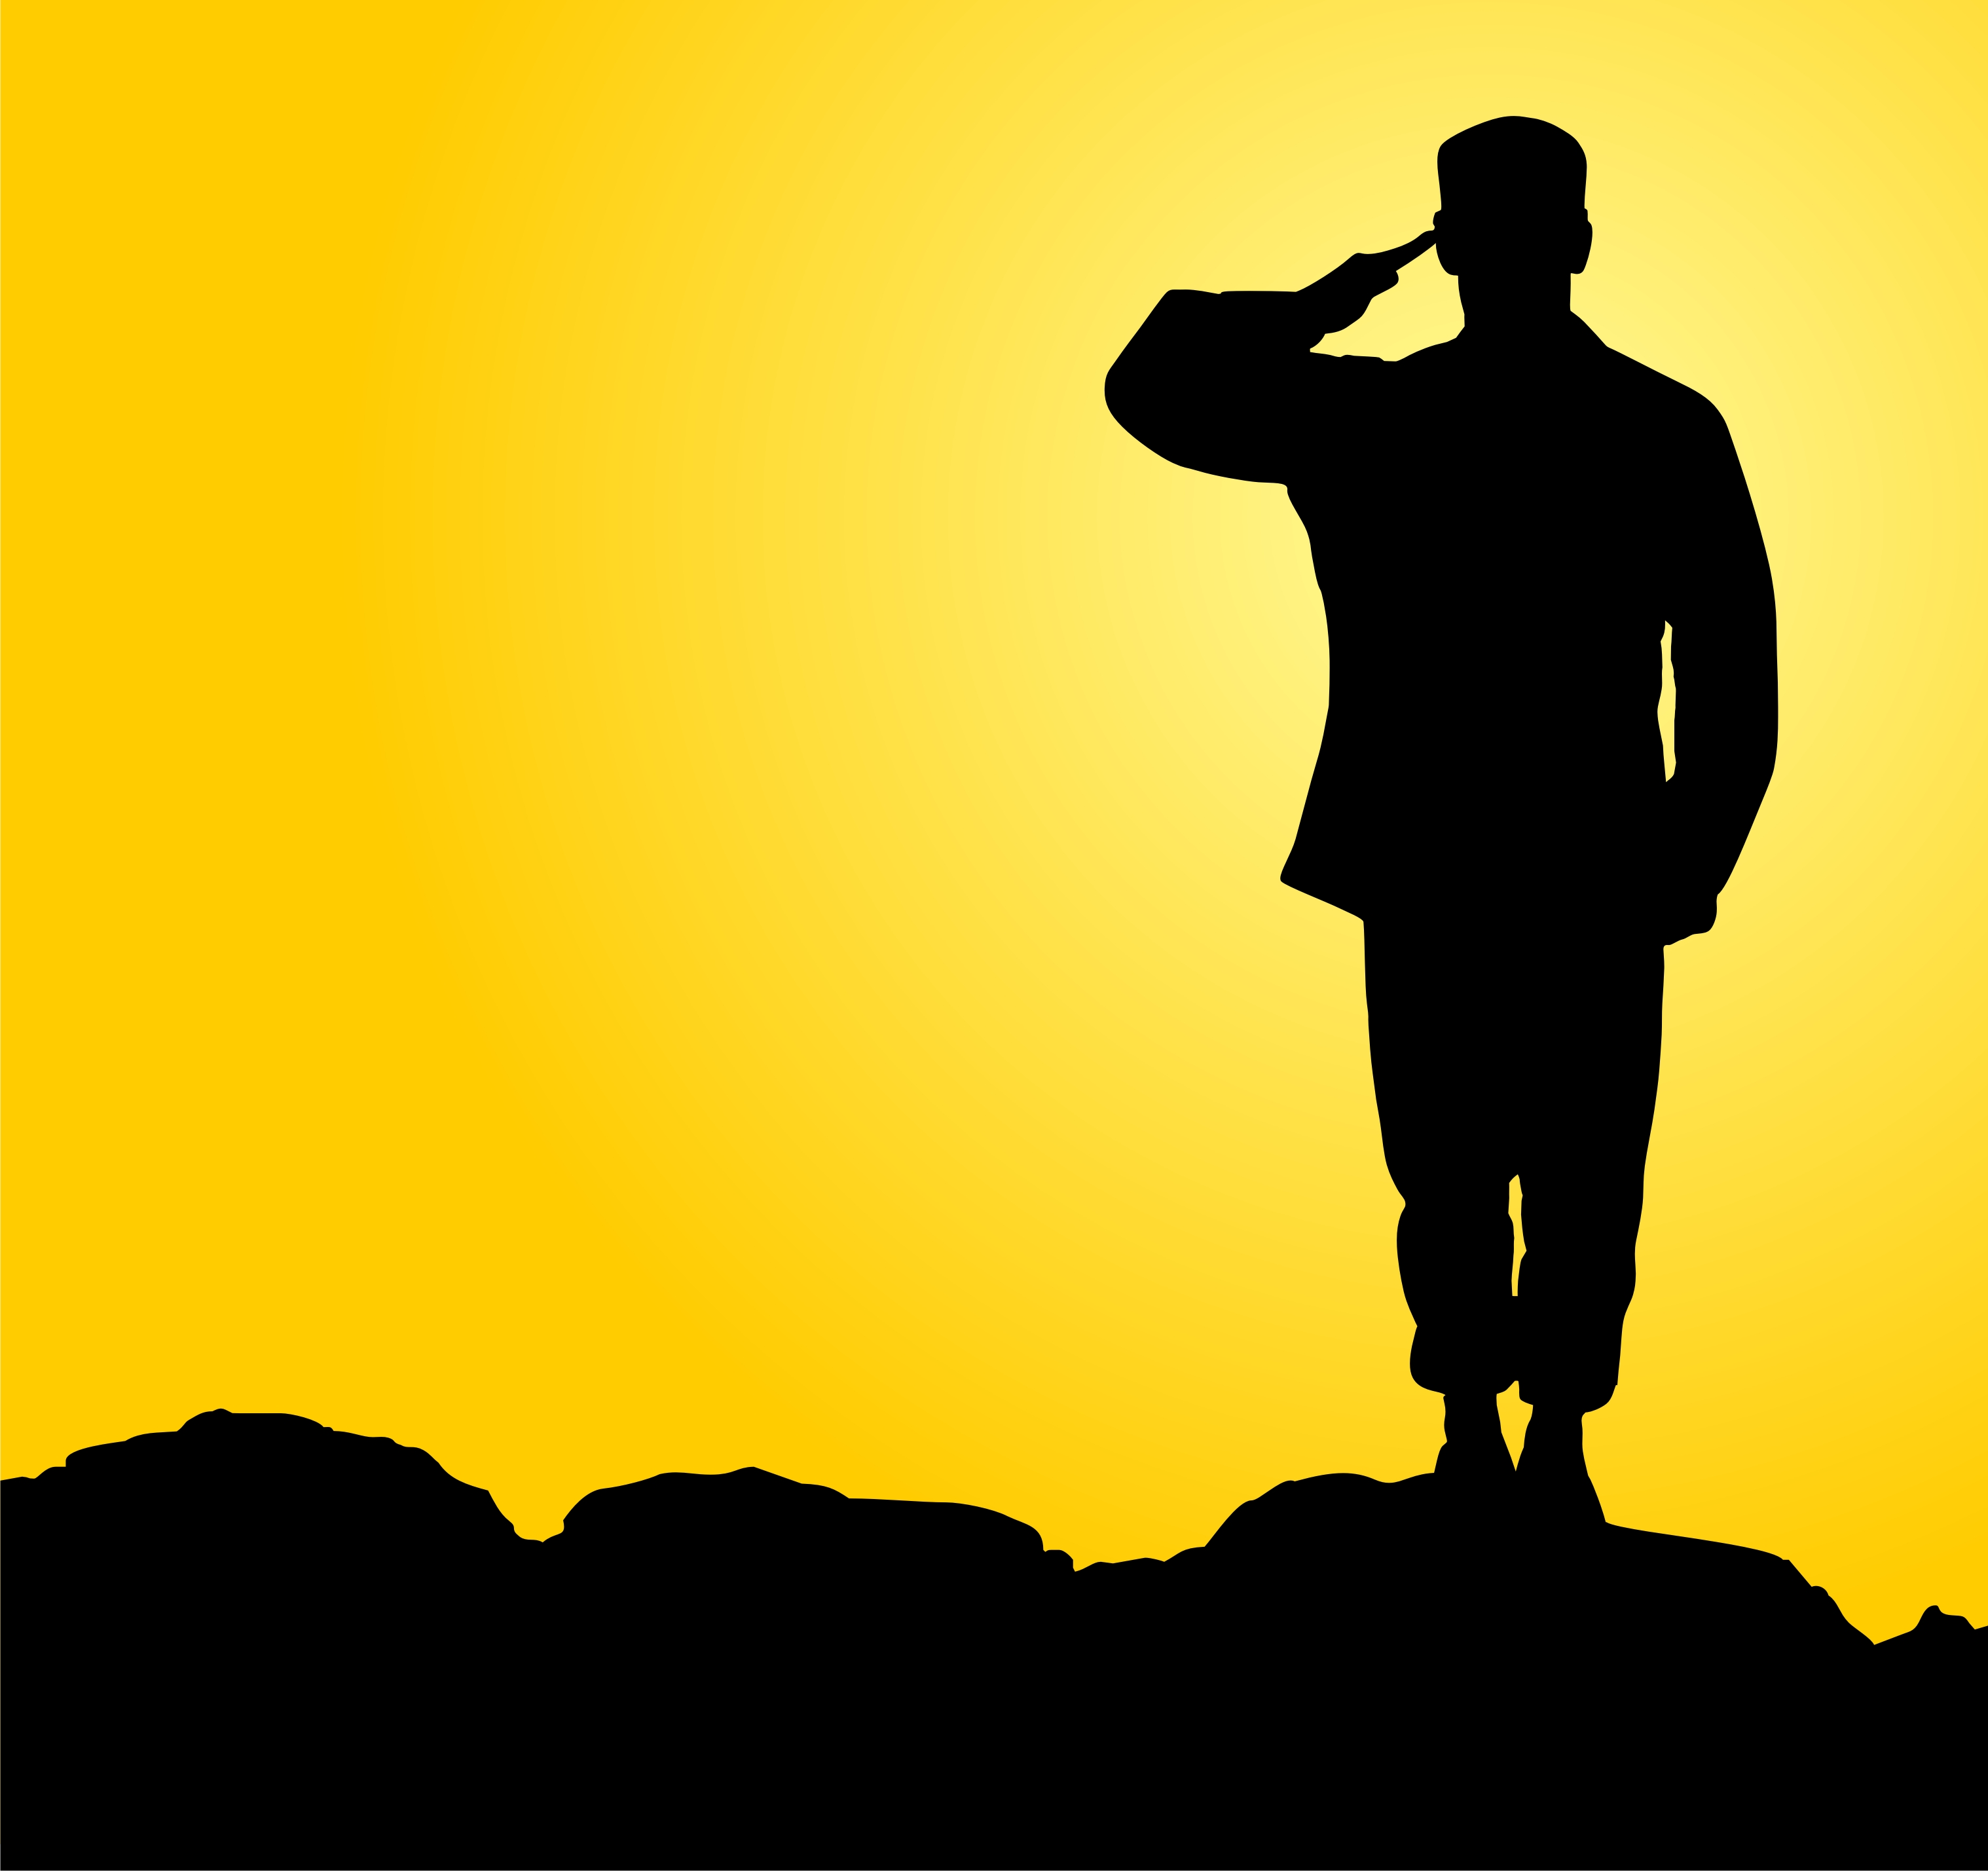 Saluting Soldier Silhouette Free Vector